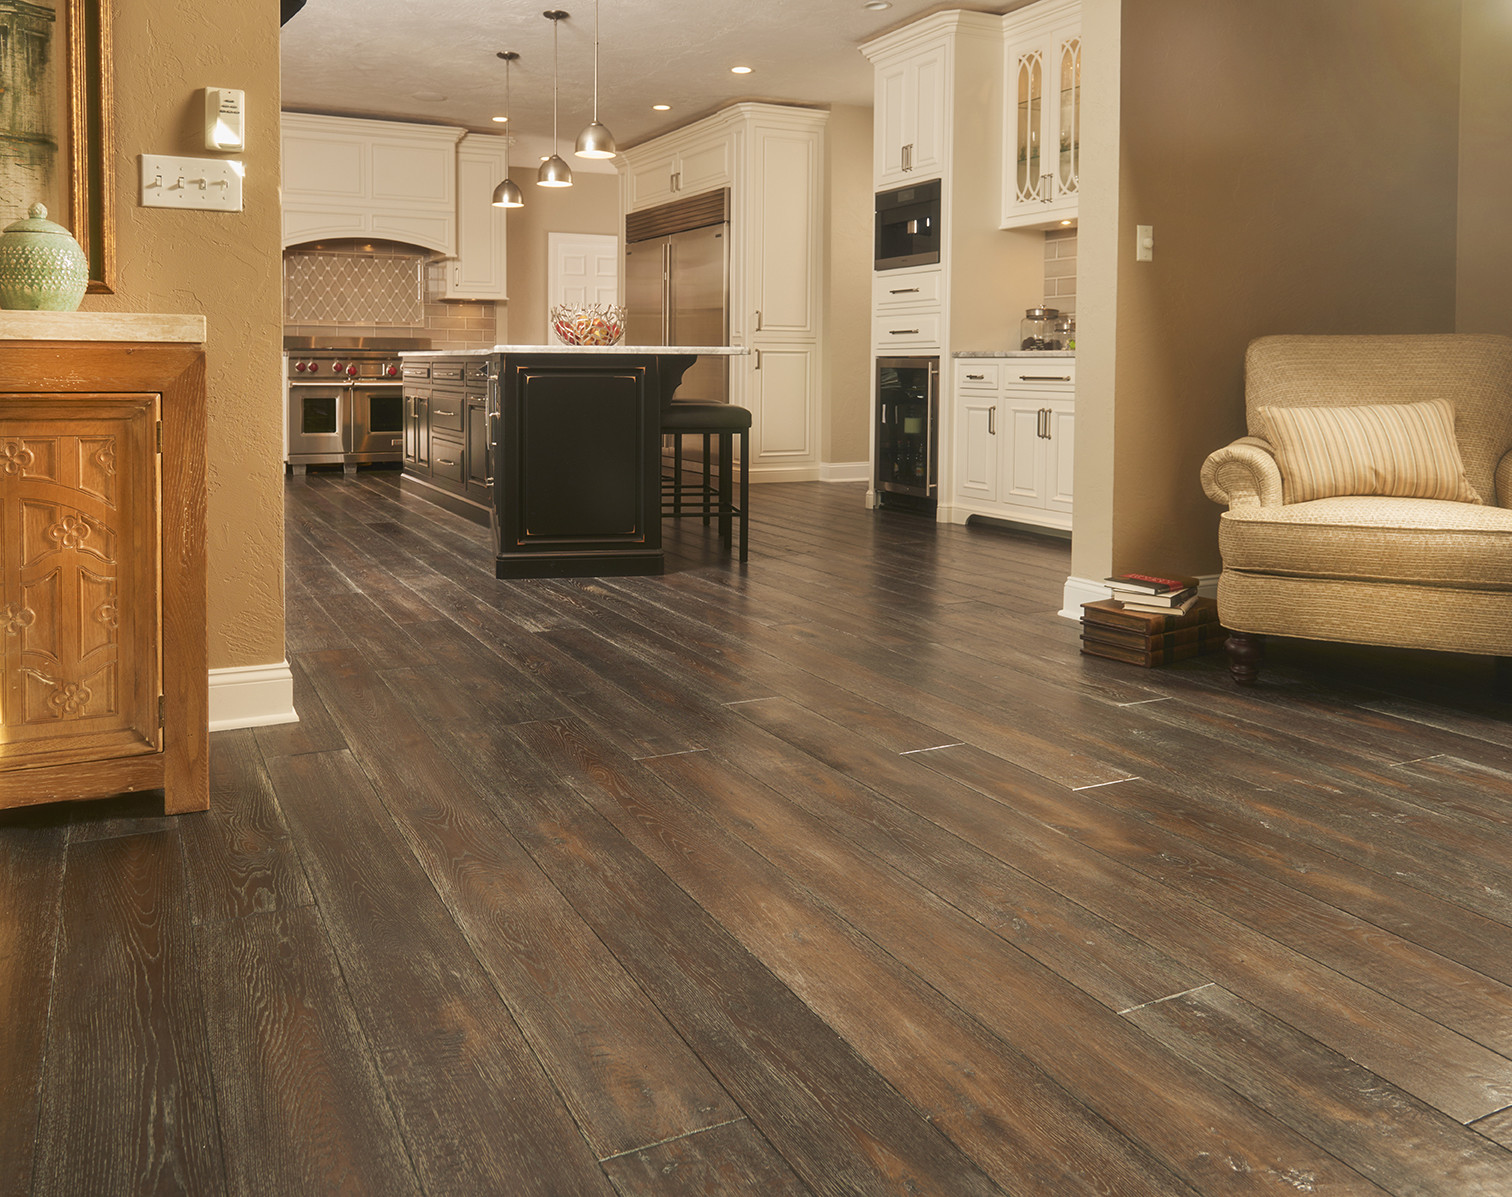 bruce hardwood and laminate floor cleaner reviews of traditional living handscraped oak laminate reviews 0060474314014 a in western pa traditional home peachey hardwood flooring